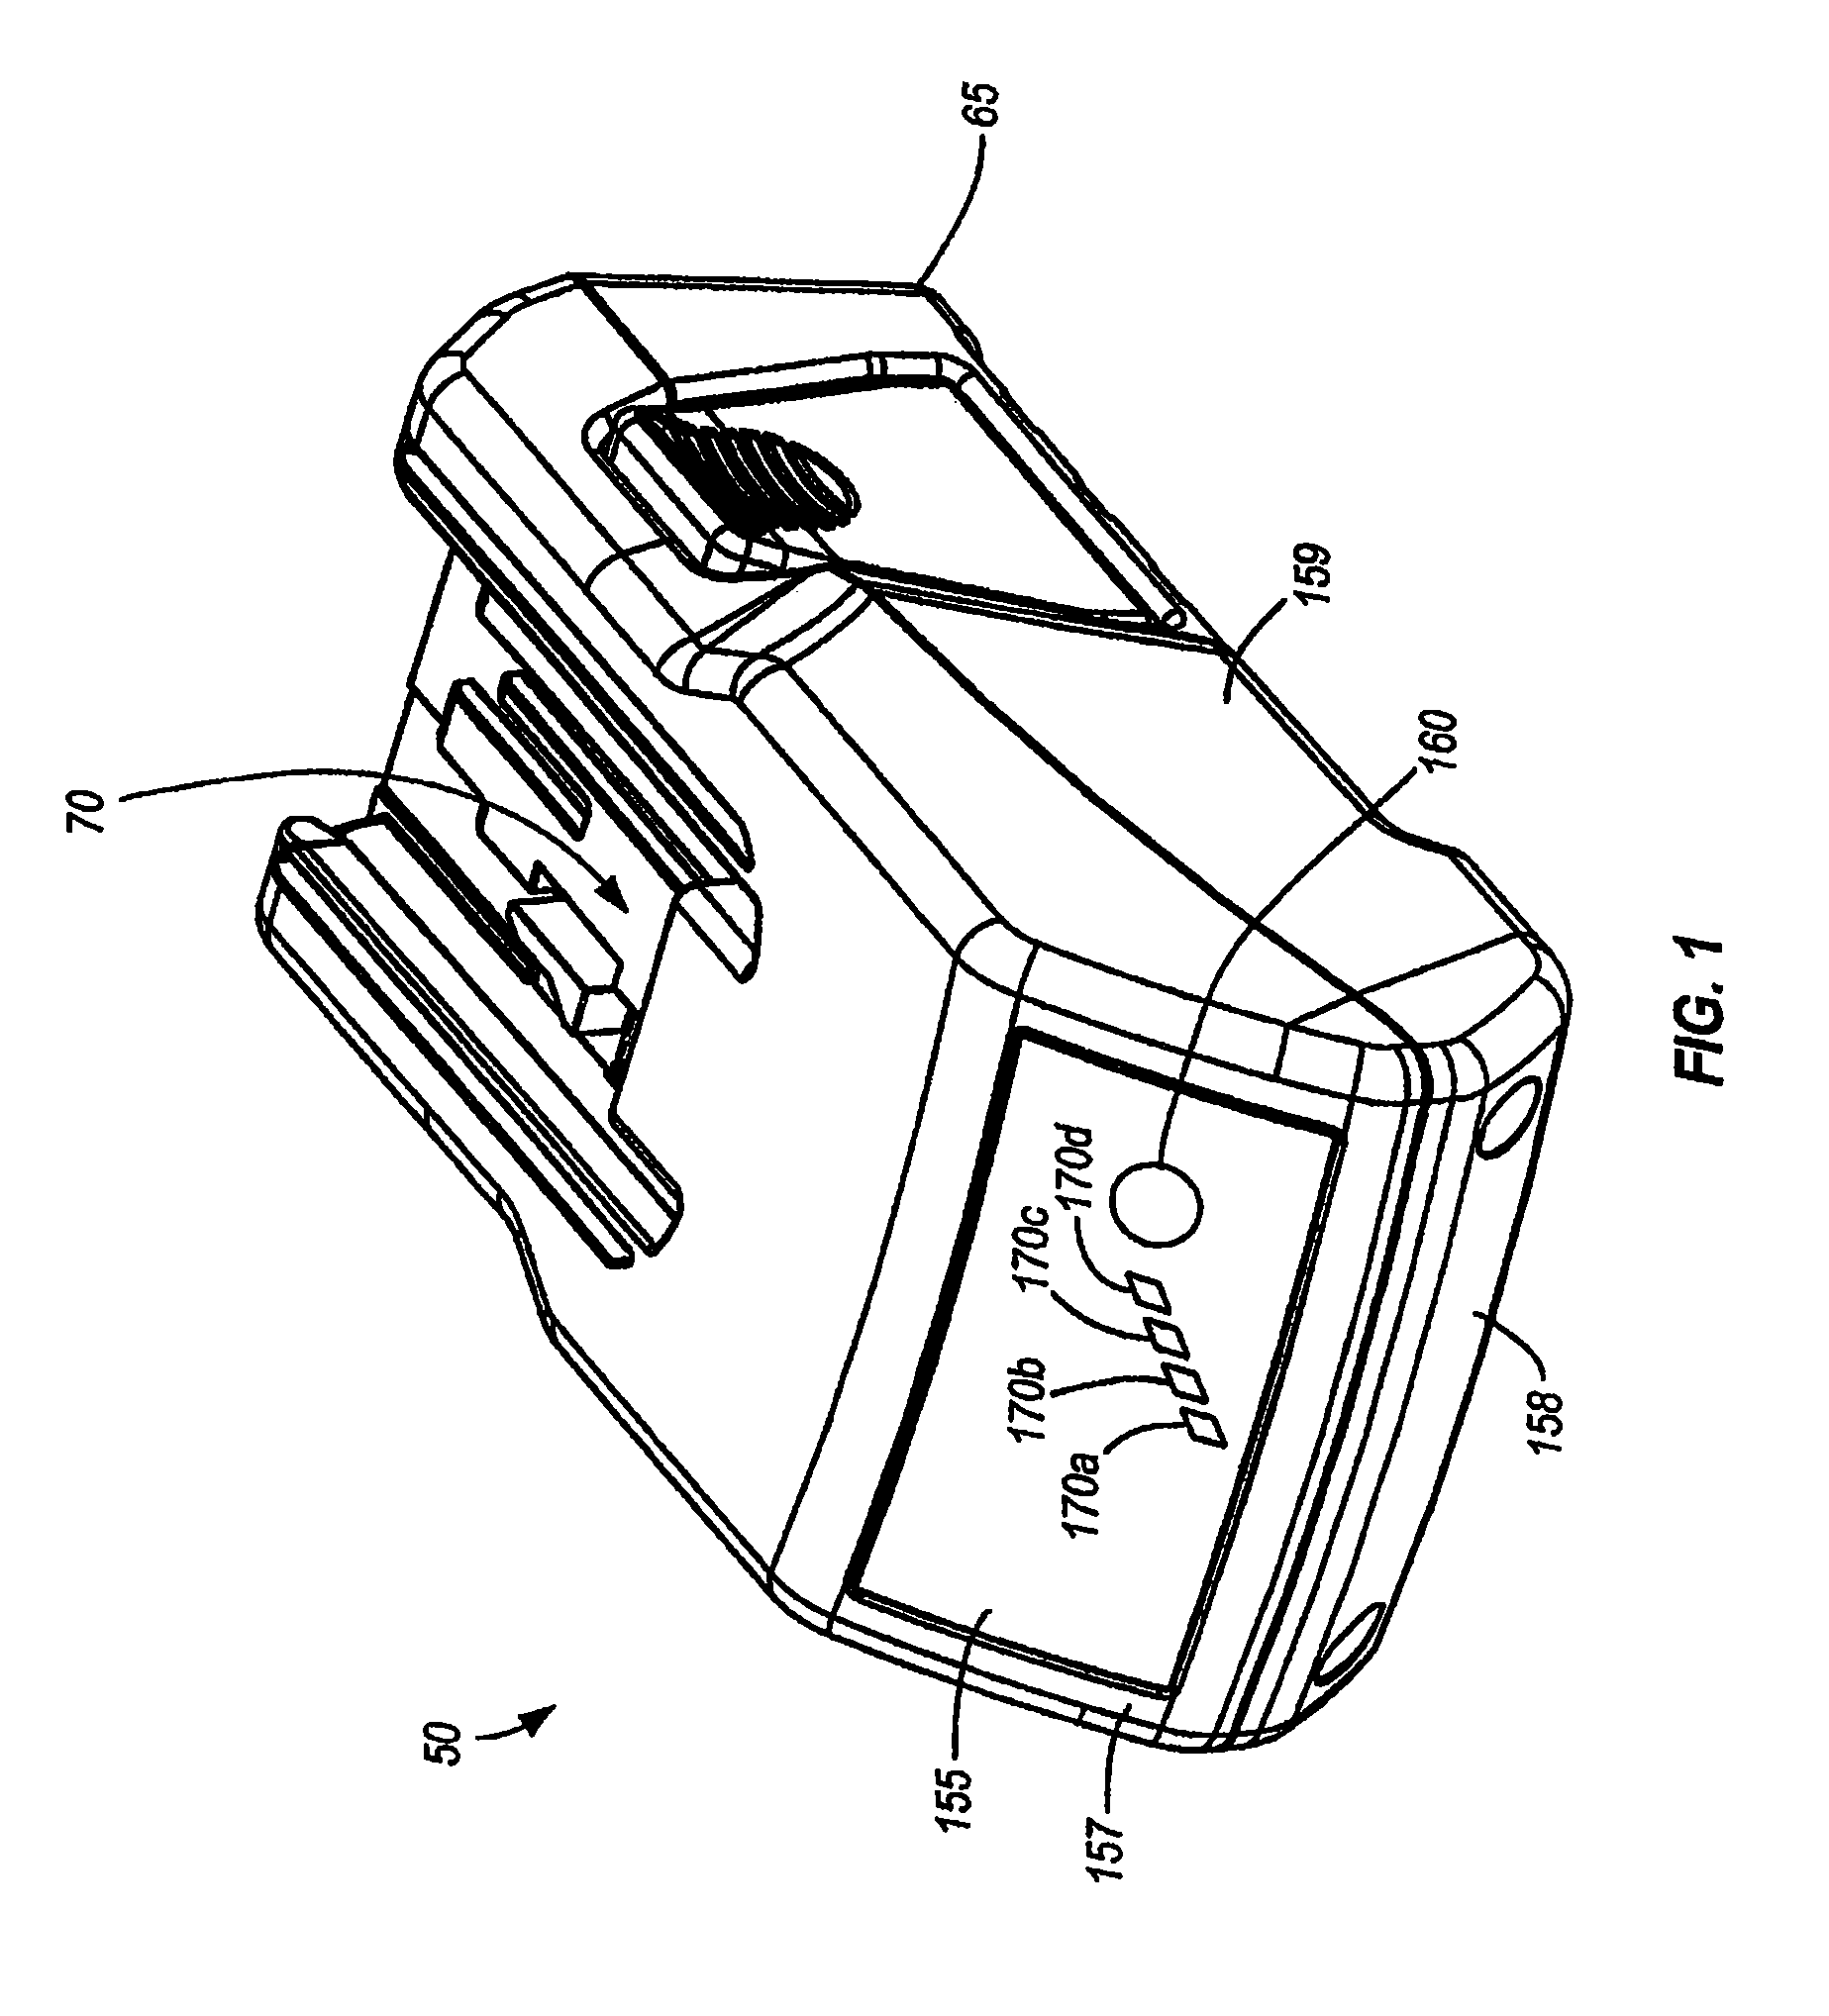 patent us8471532 - battery pack